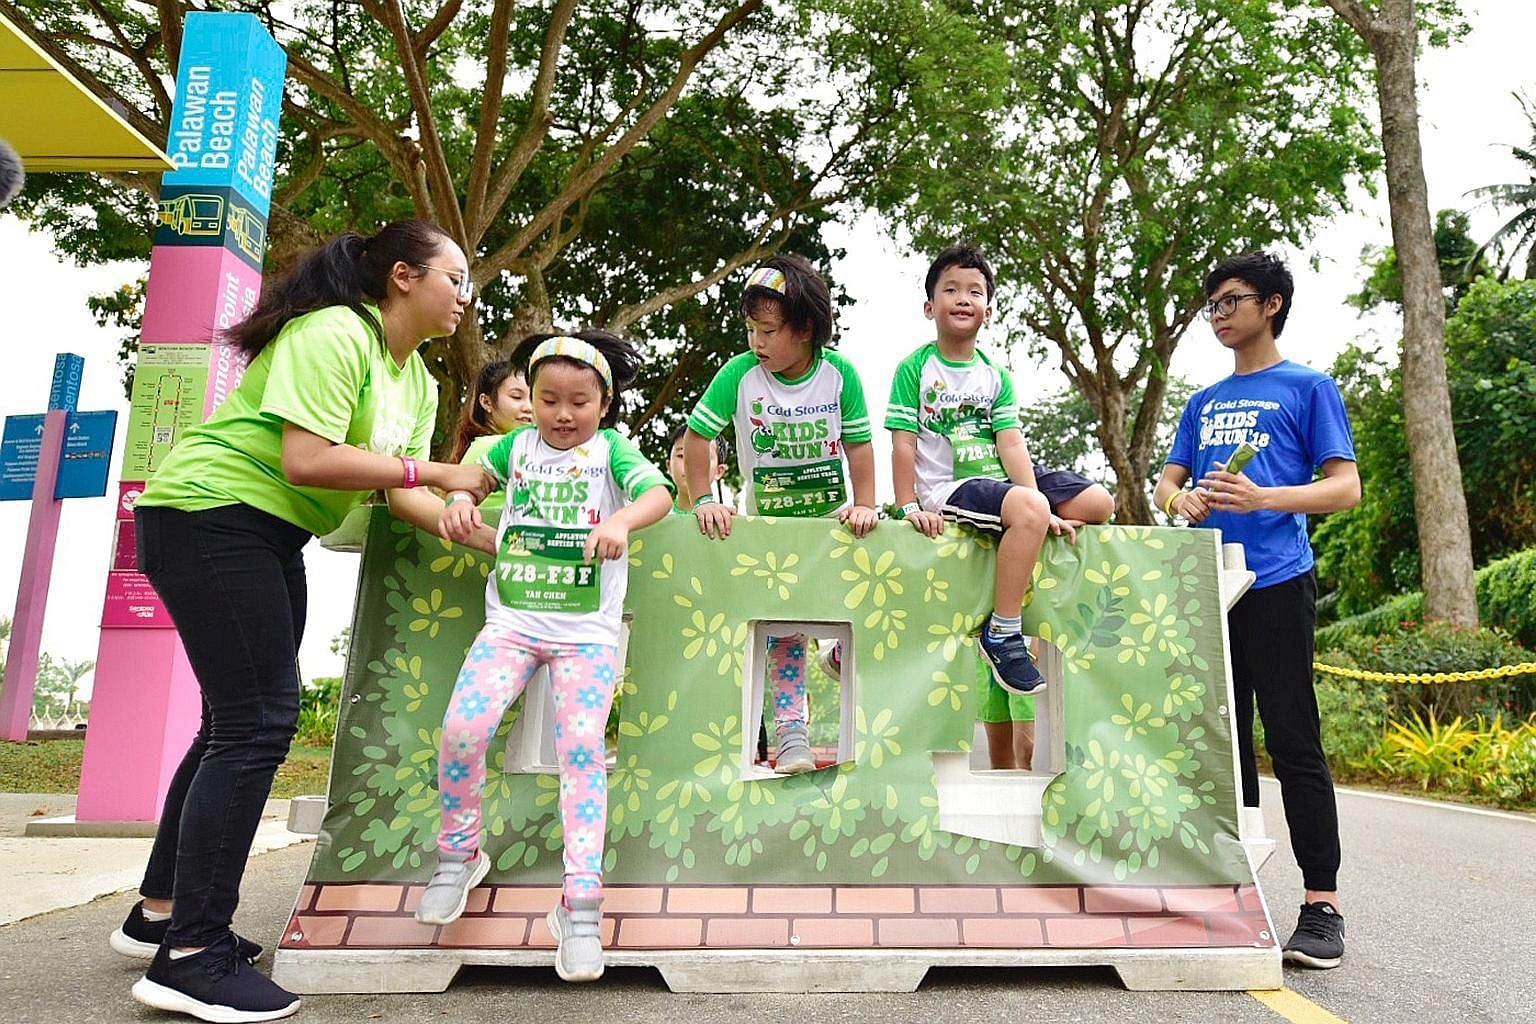 More than 15,000 people woke up bright and early yesterday to take part in the Cold Storage Kids Run, held at Palawan Green Sentosa. Children, together with their families and friends, took part in events across nine categories, including the competi